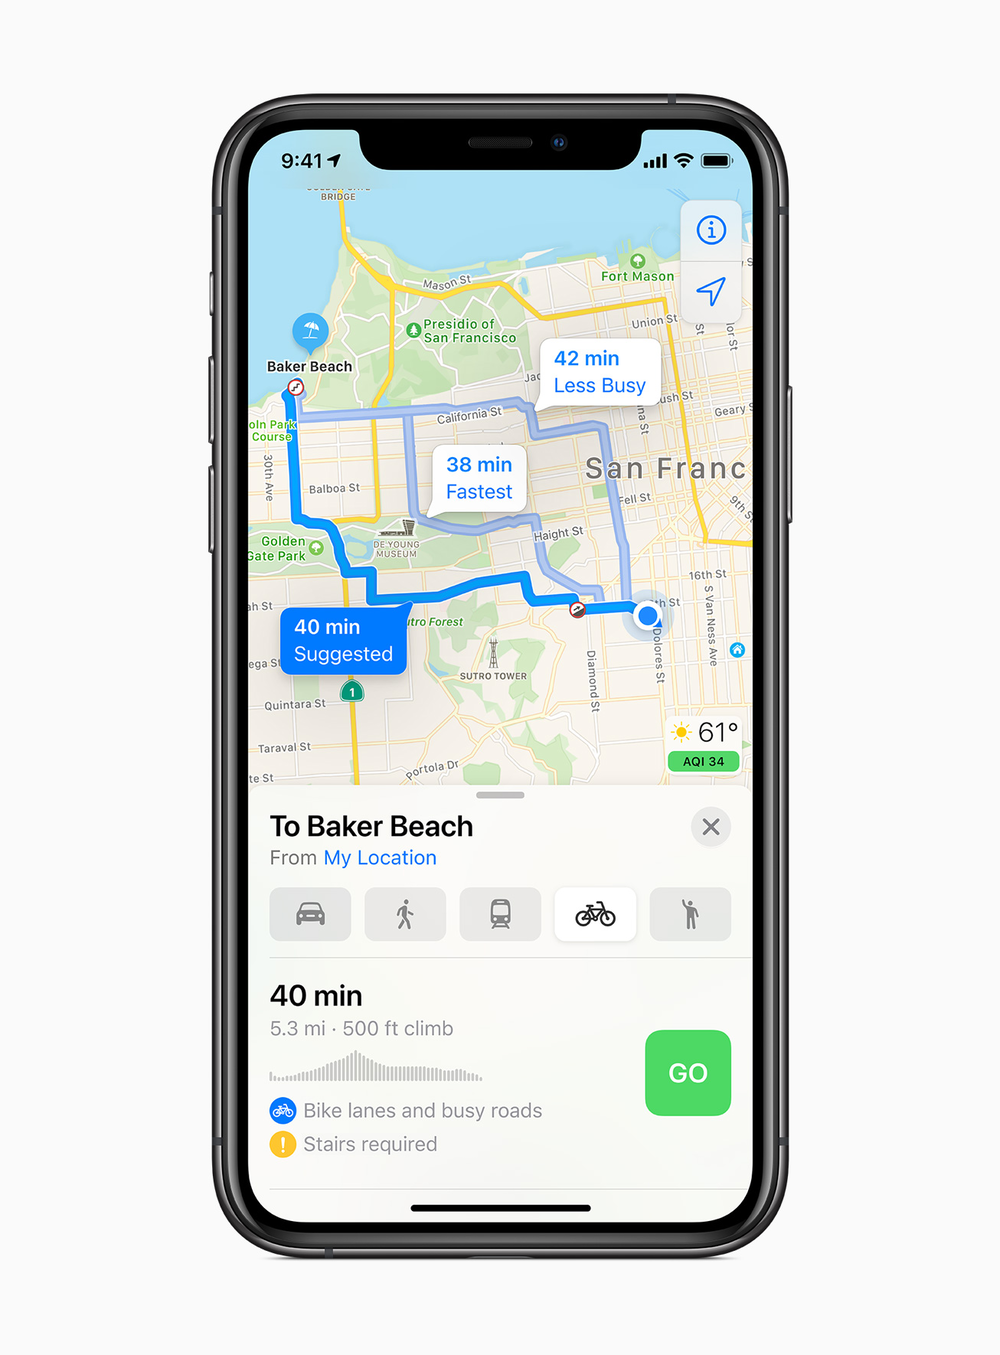 The new cycling directions in iOS 14 Maps app